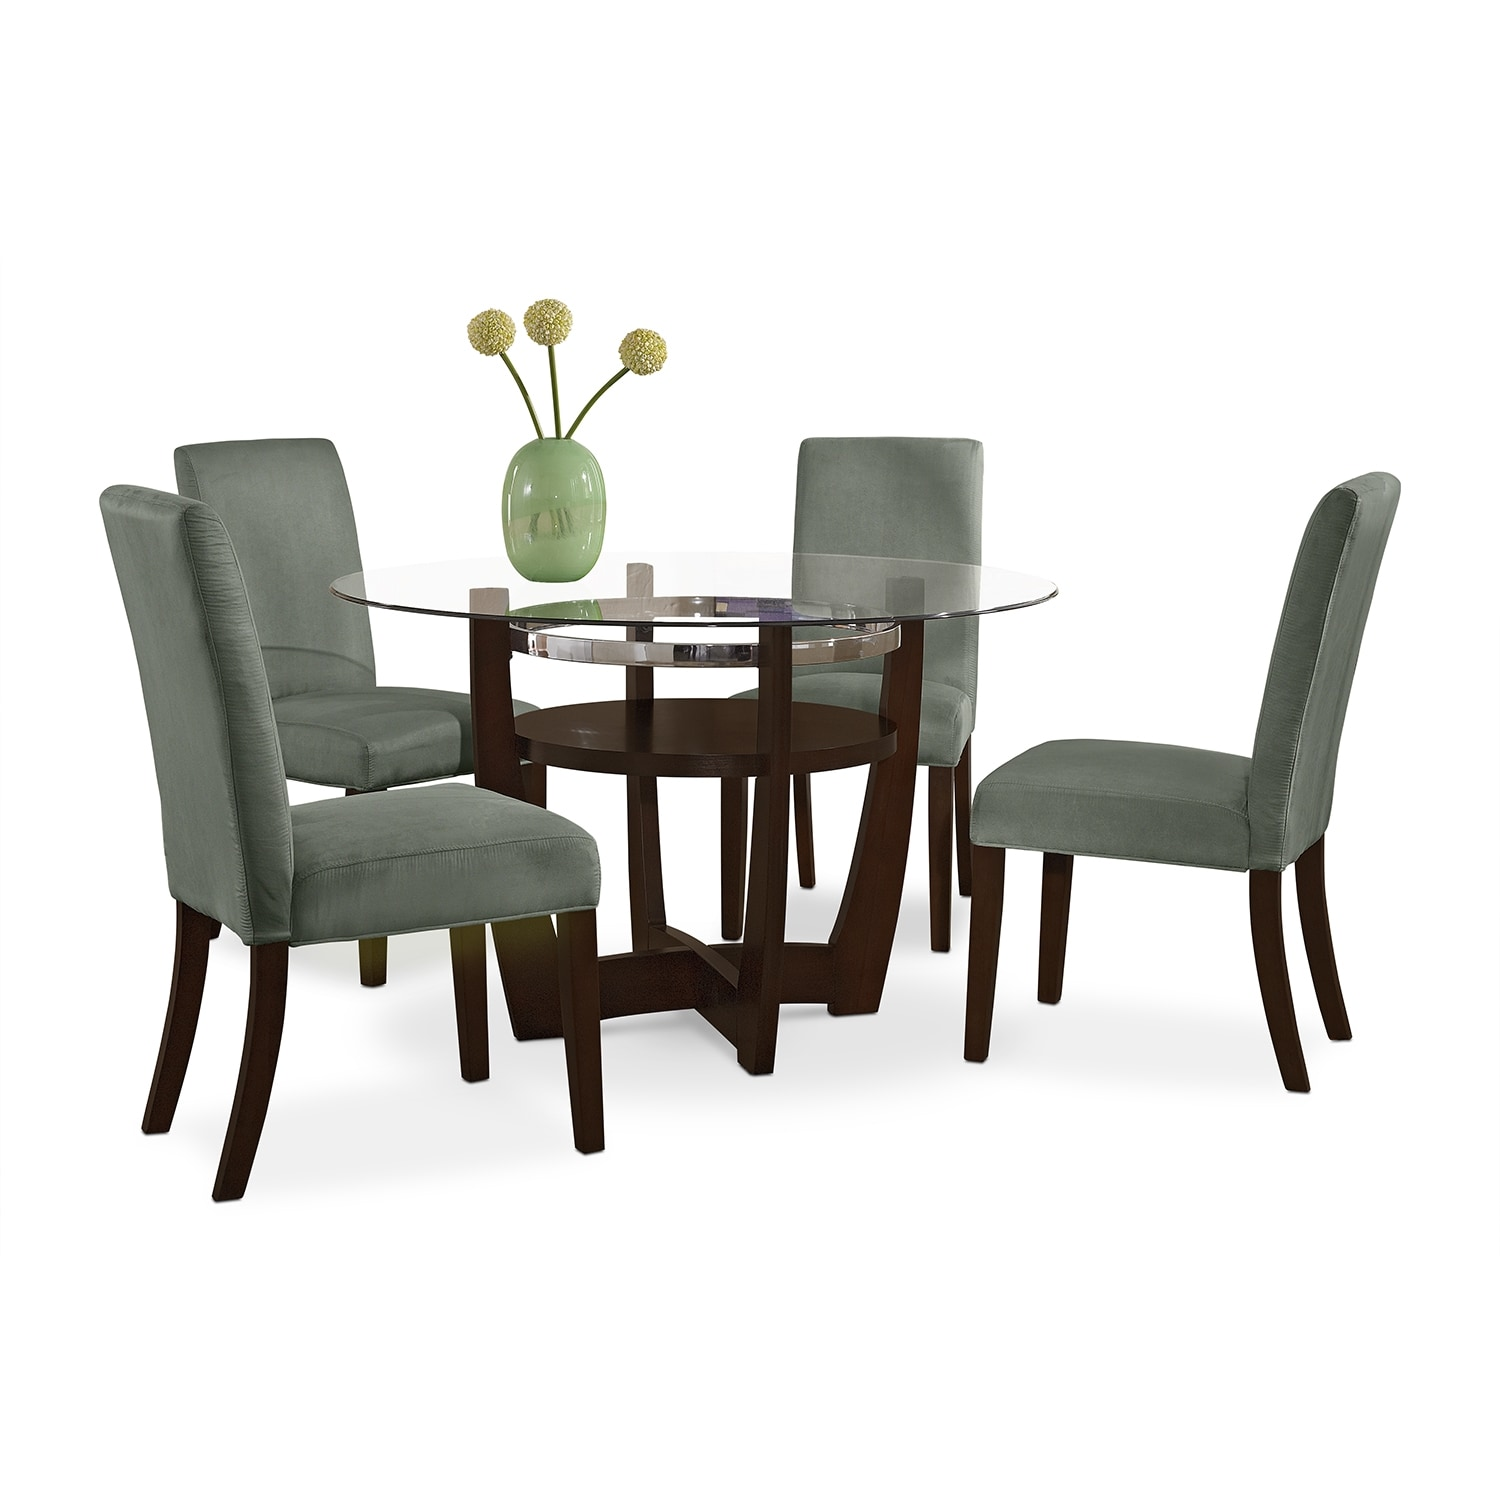 dining room tables on sale | Shop Dining Room Furniture Sale | American Signature Furniture